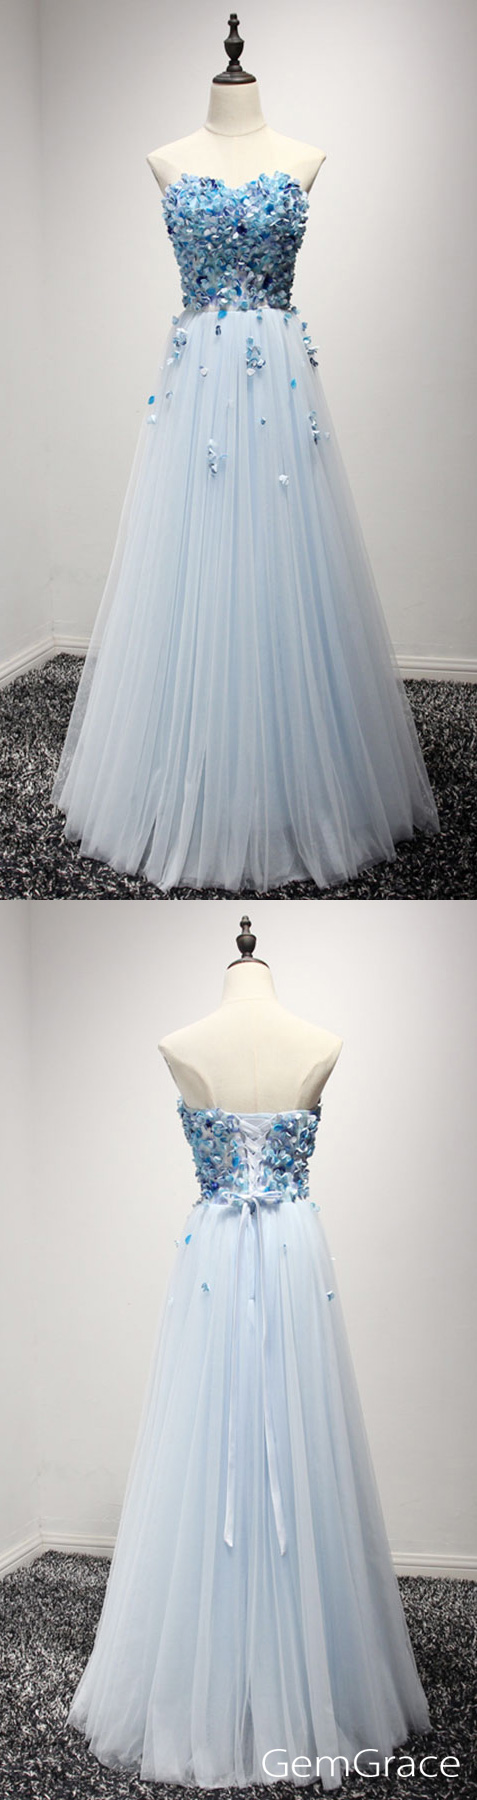 Blue Long Cheap Prom Dress Strapless A Line Poofy Tulle Style With ...